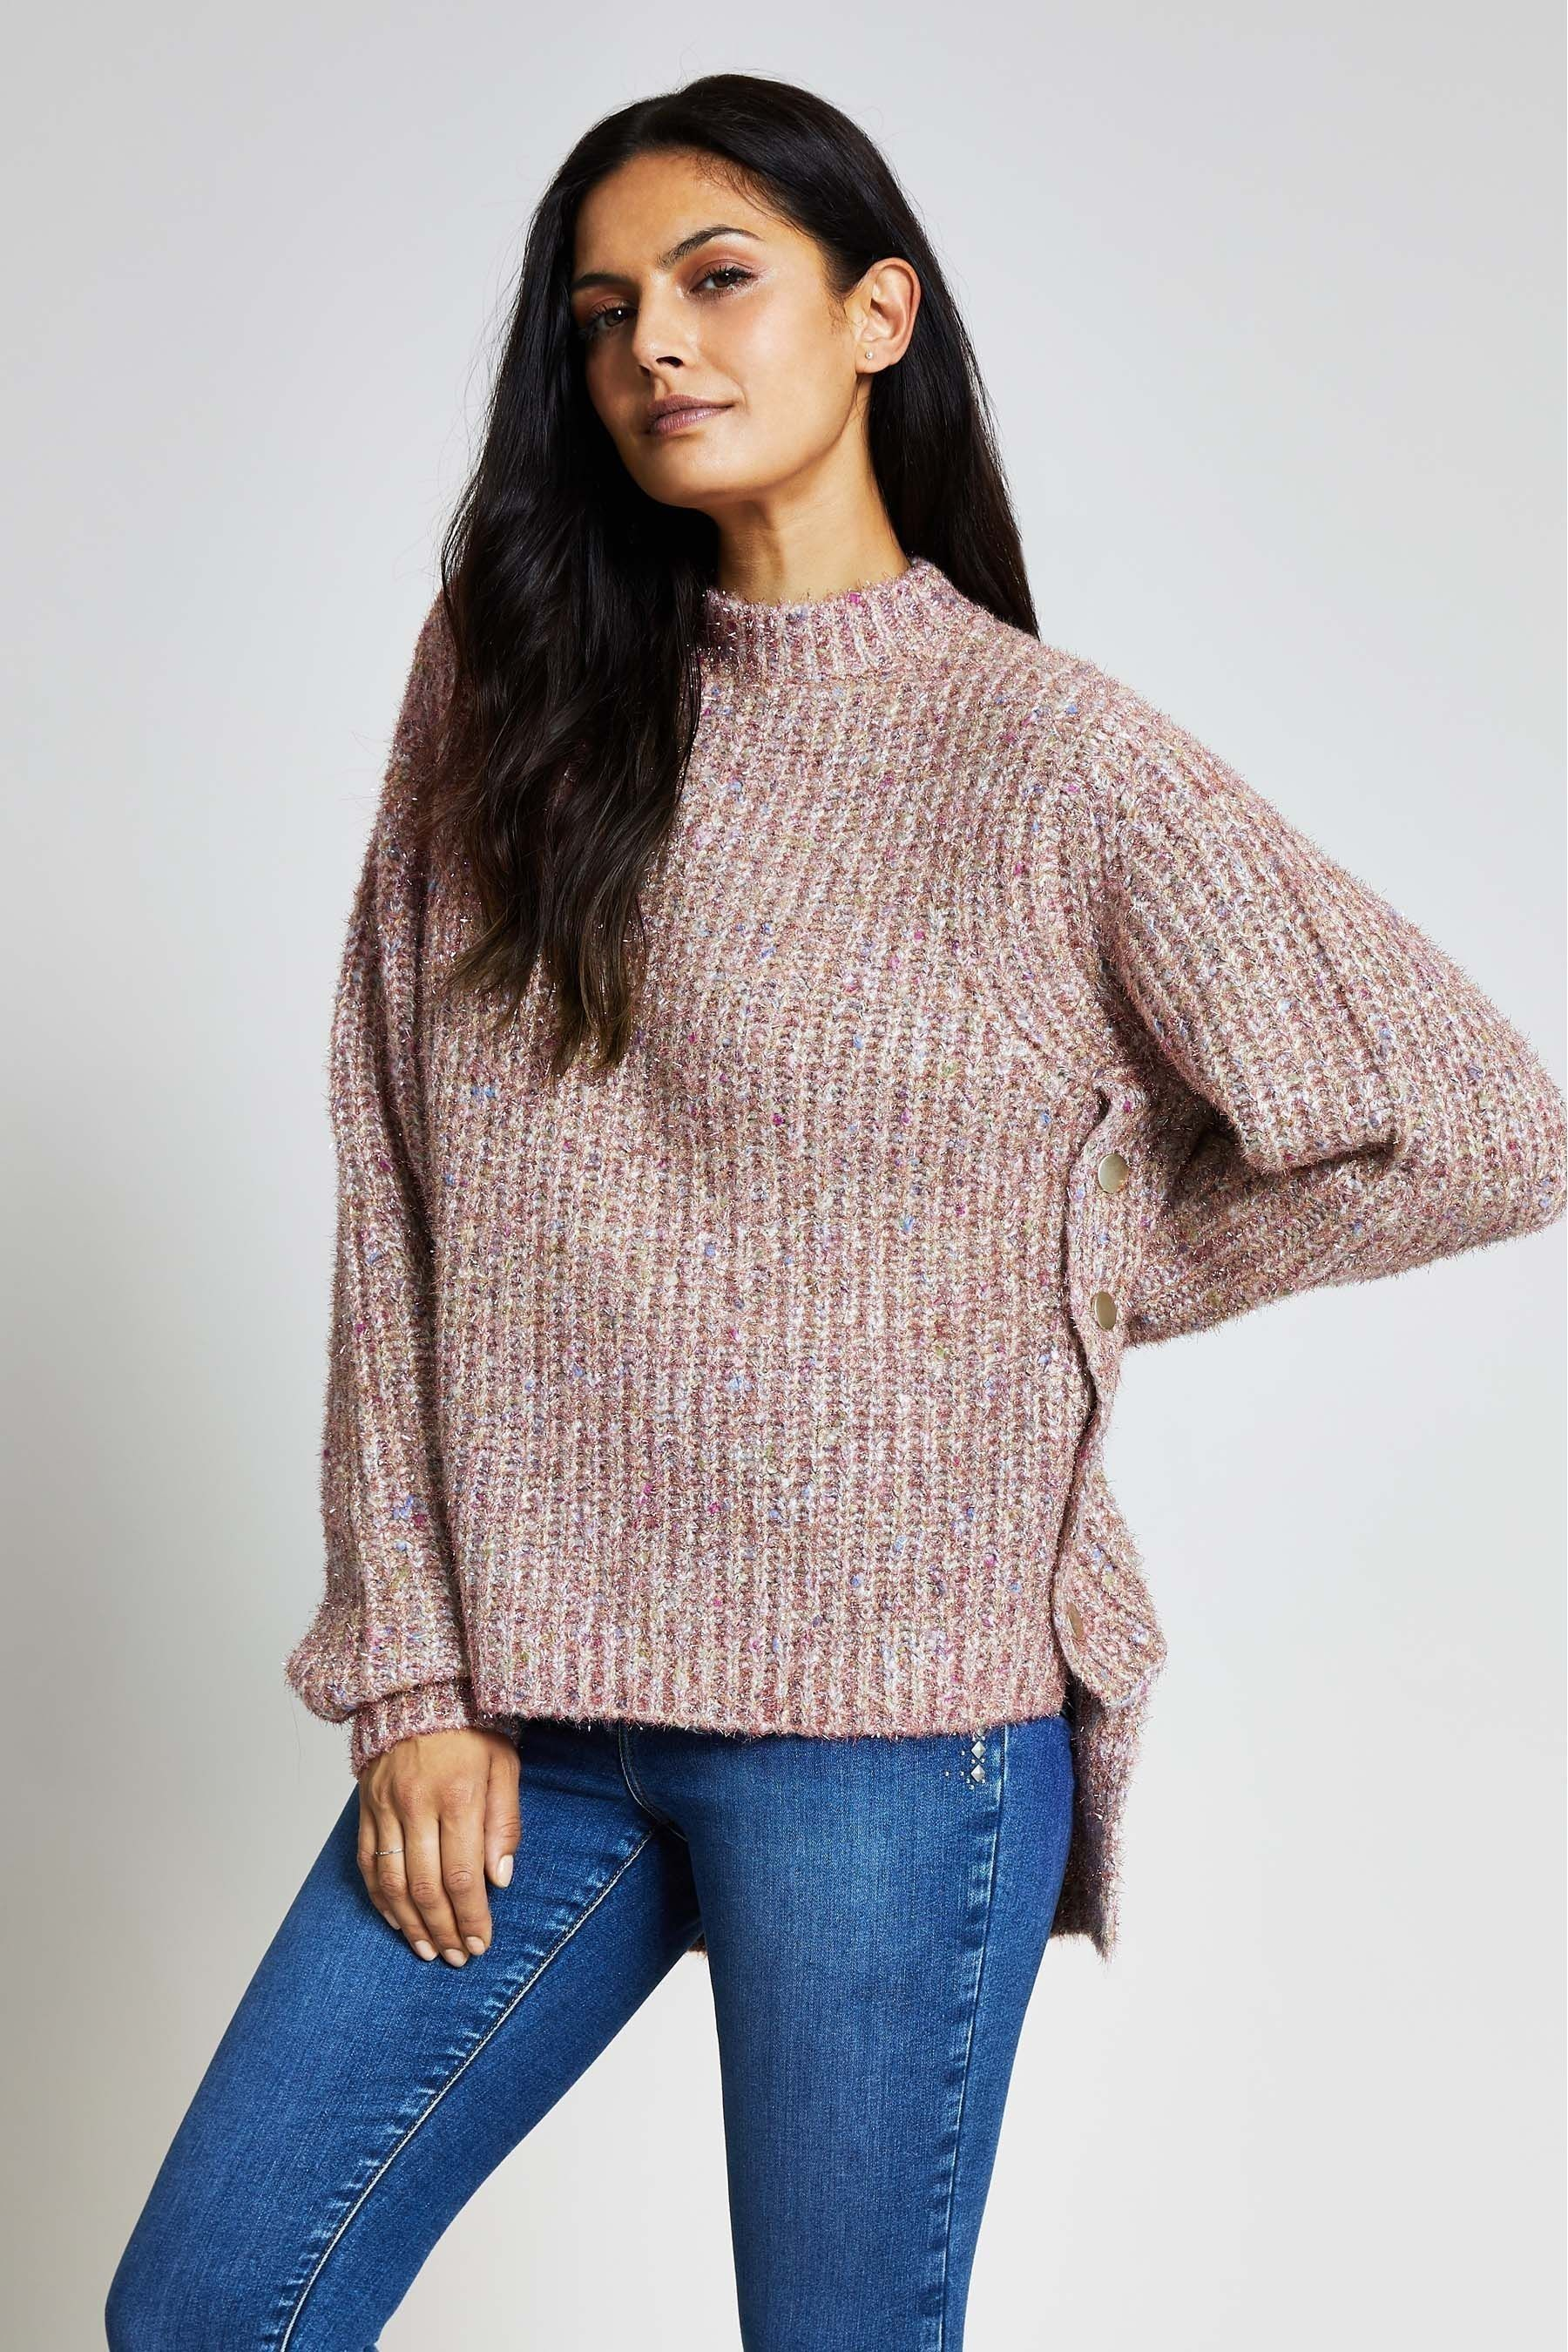 Womens Harpenne Pink Sparkly Chunky Knit Jumper -  Pink #chunkyknitjumper Womens Harpenne Pink Sparkly Chunky Knit Jumper -  Pink #chunkyknitjumper Womens Harpenne Pink Sparkly Chunky Knit Jumper -  Pink #chunkyknitjumper Womens Harpenne Pink Sparkly Chunky Knit Jumper -  Pink #chunkyknitjumper Womens Harpenne Pink Sparkly Chunky Knit Jumper -  Pink #chunkyknitjumper Womens Harpenne Pink Sparkly Chunky Knit Jumper -  Pink #chunkyknitjumper Womens Harpenne Pink Sparkly Chunky Knit Jumper -  Pink #chunkyknitjumper